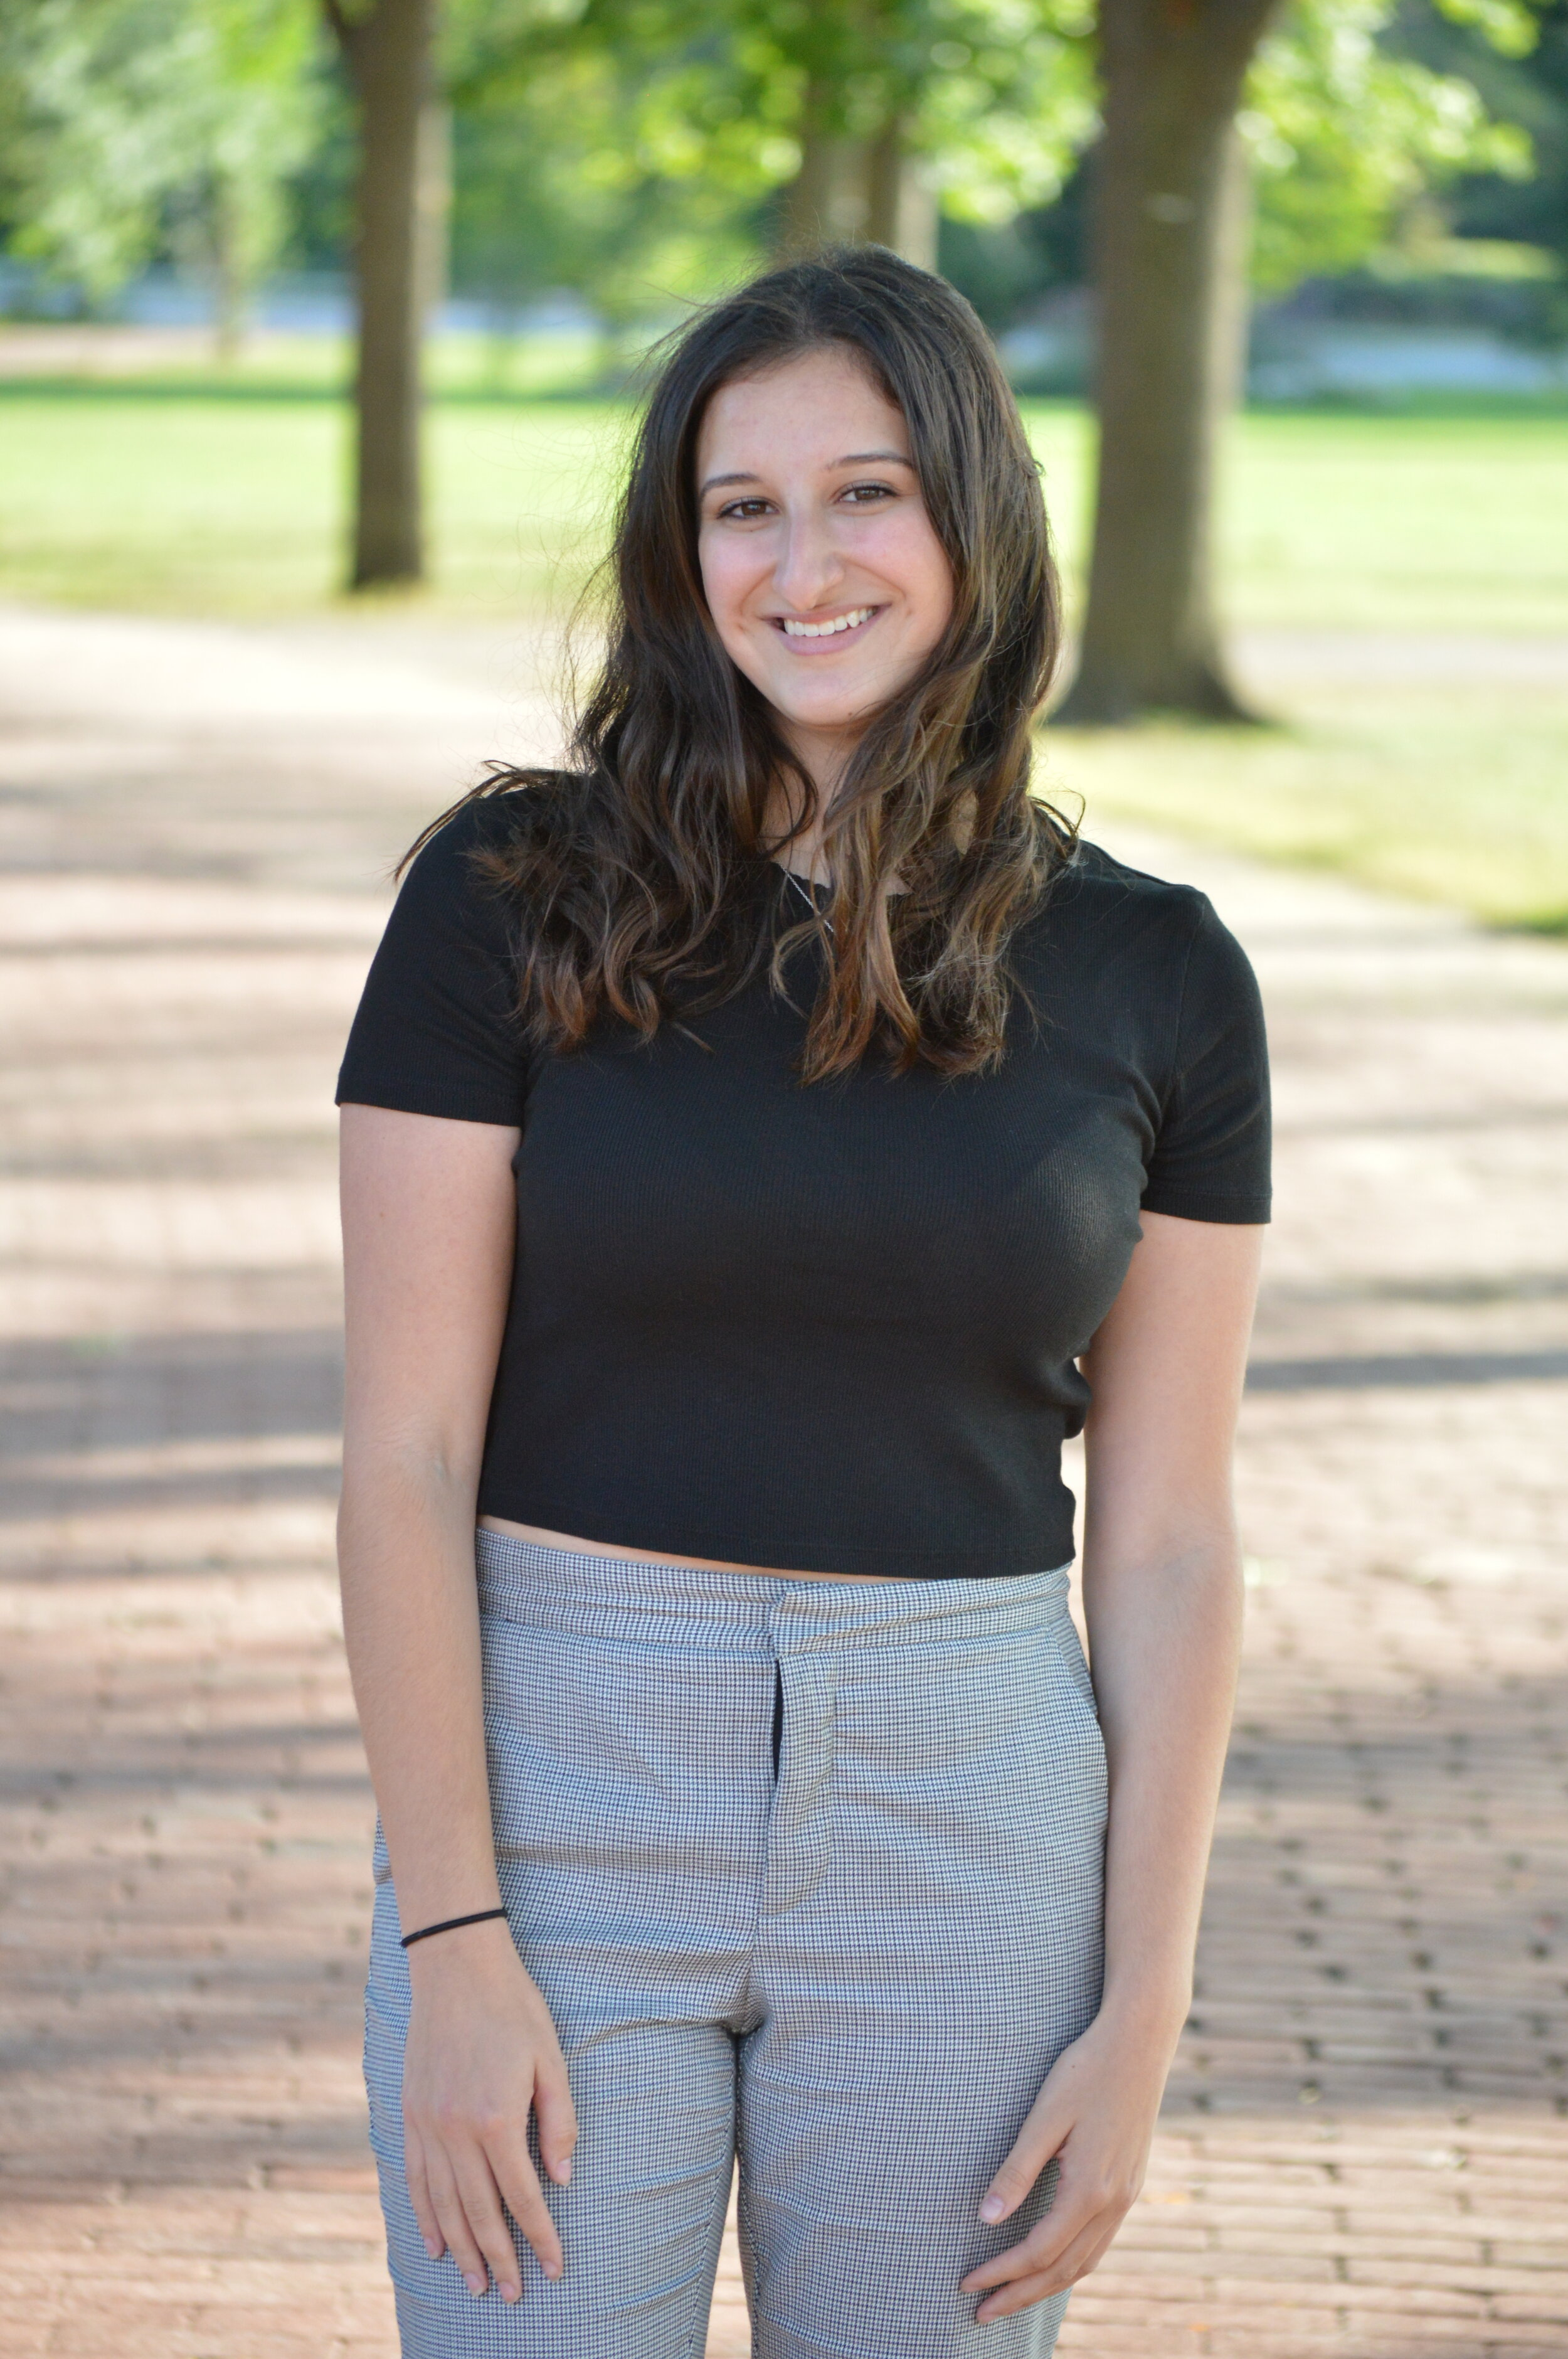 """Finance lead - Name: Ashley RaudanskisProgram: 3rd Year Biomedical Sciences, Minoring in Neuroscience3 favourite things: Friends and Family, Candles, VacationsFavourite TED Talk: """"We Should All Be Feminists"""" by Chimamanda Ngozi Adichie"""